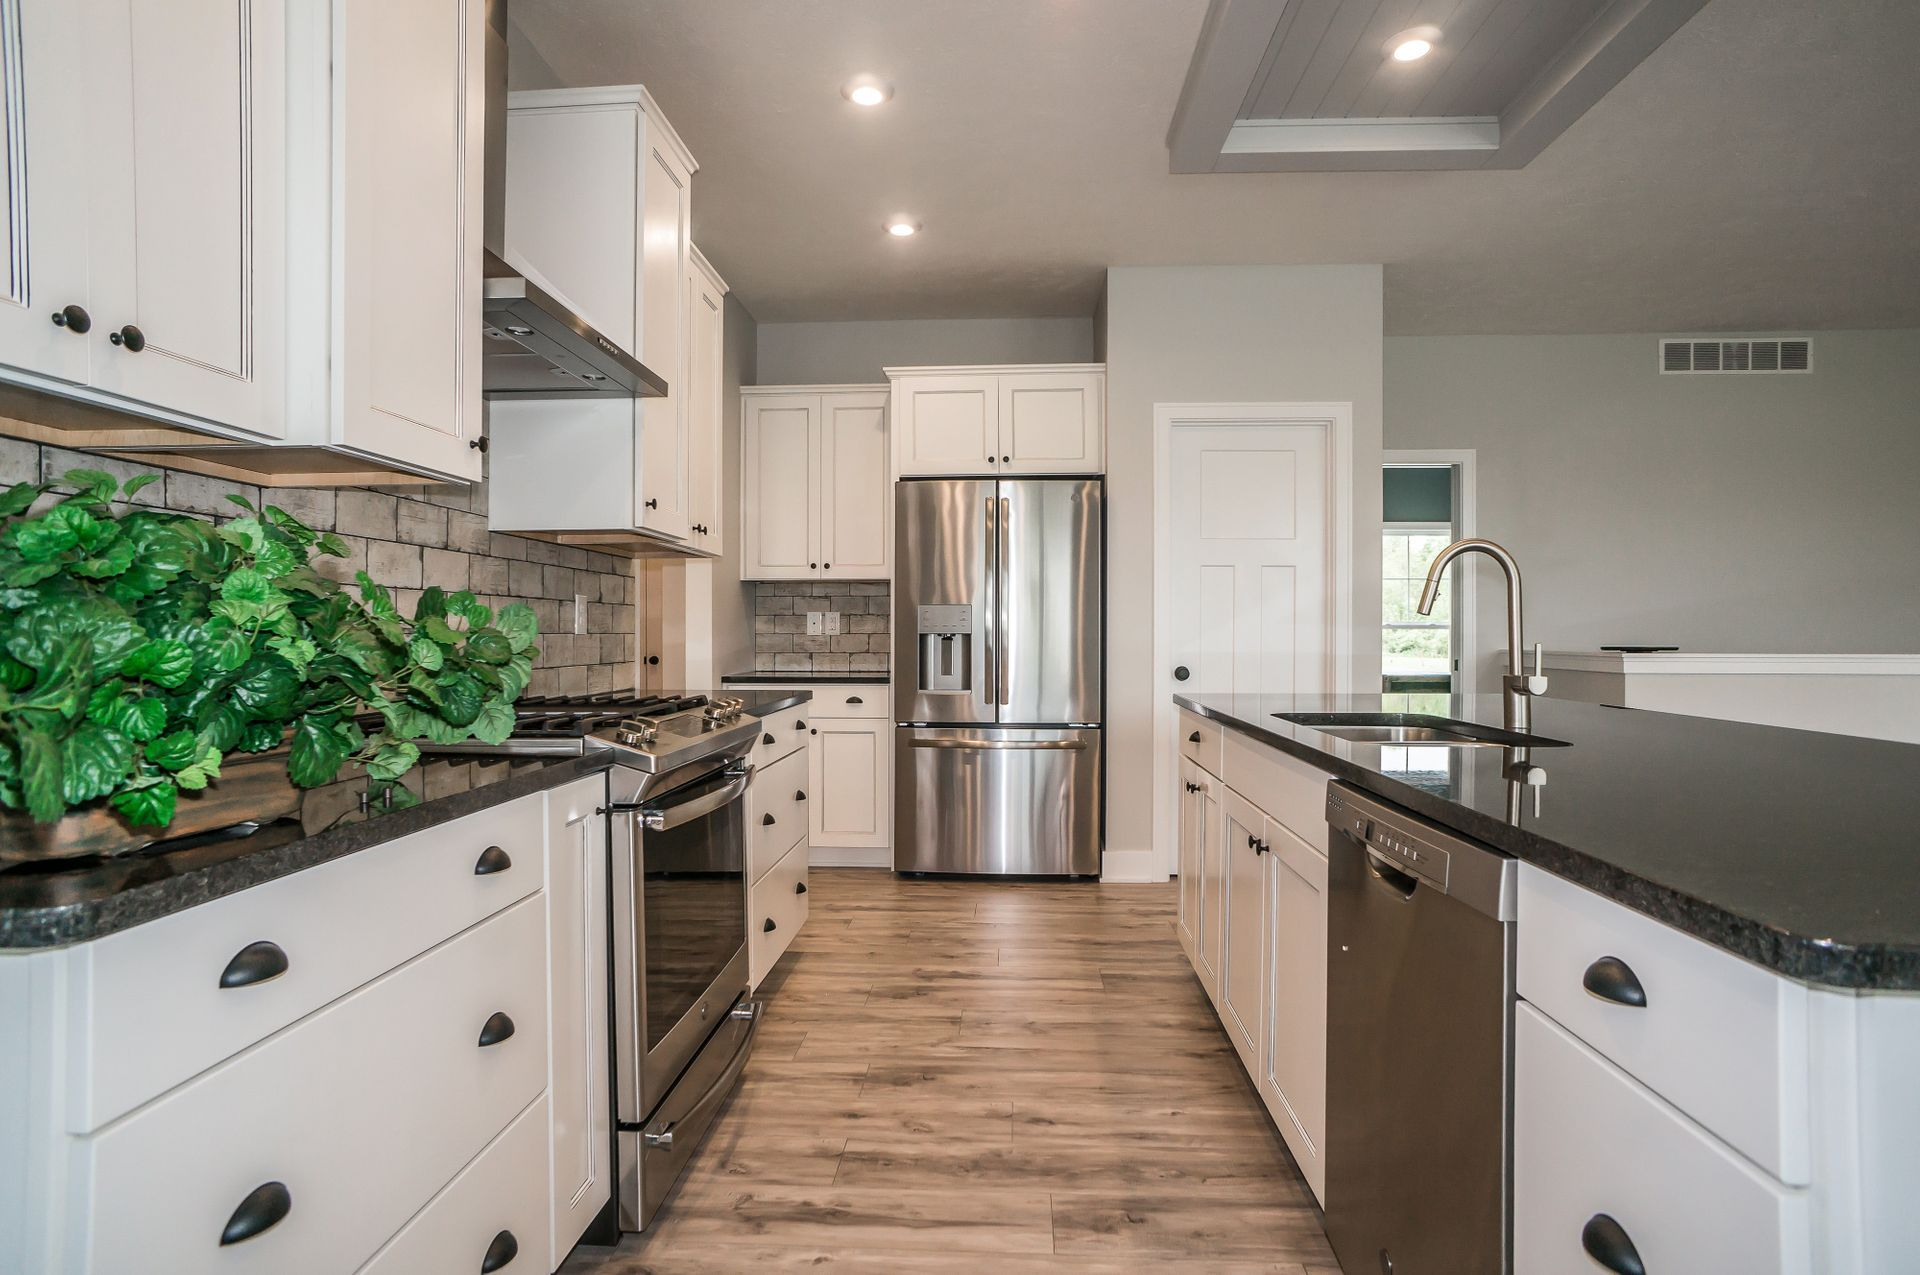 Kitchen featured in The Maxwell By Eastbrook Homes Inc. in Grand Rapids, MI